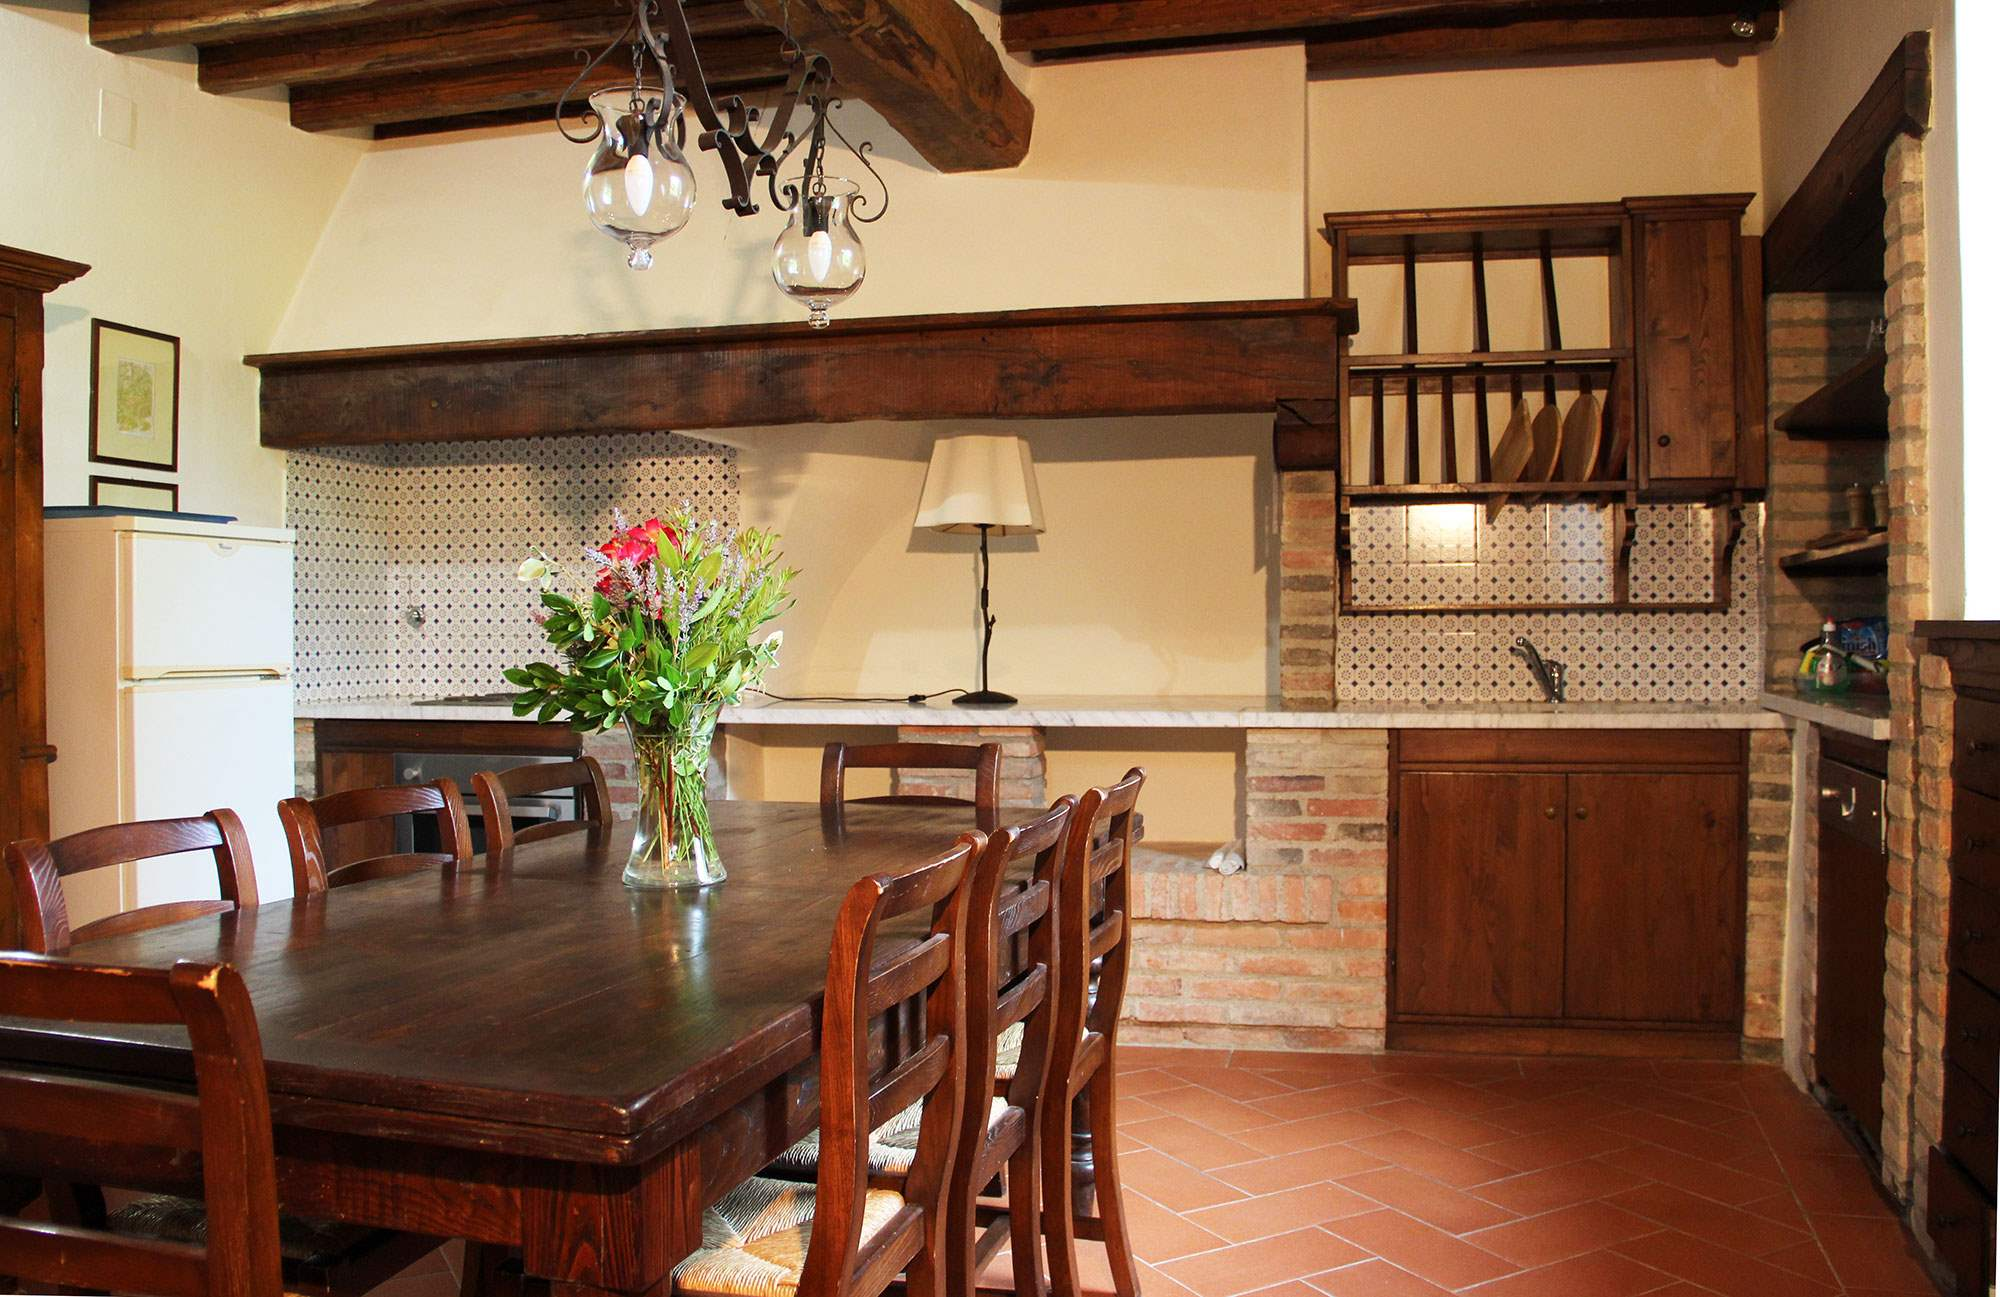 Casas Ferruzzi, 8 bedroom apartment in Chianti & Countryside, Tuscany Photo #9